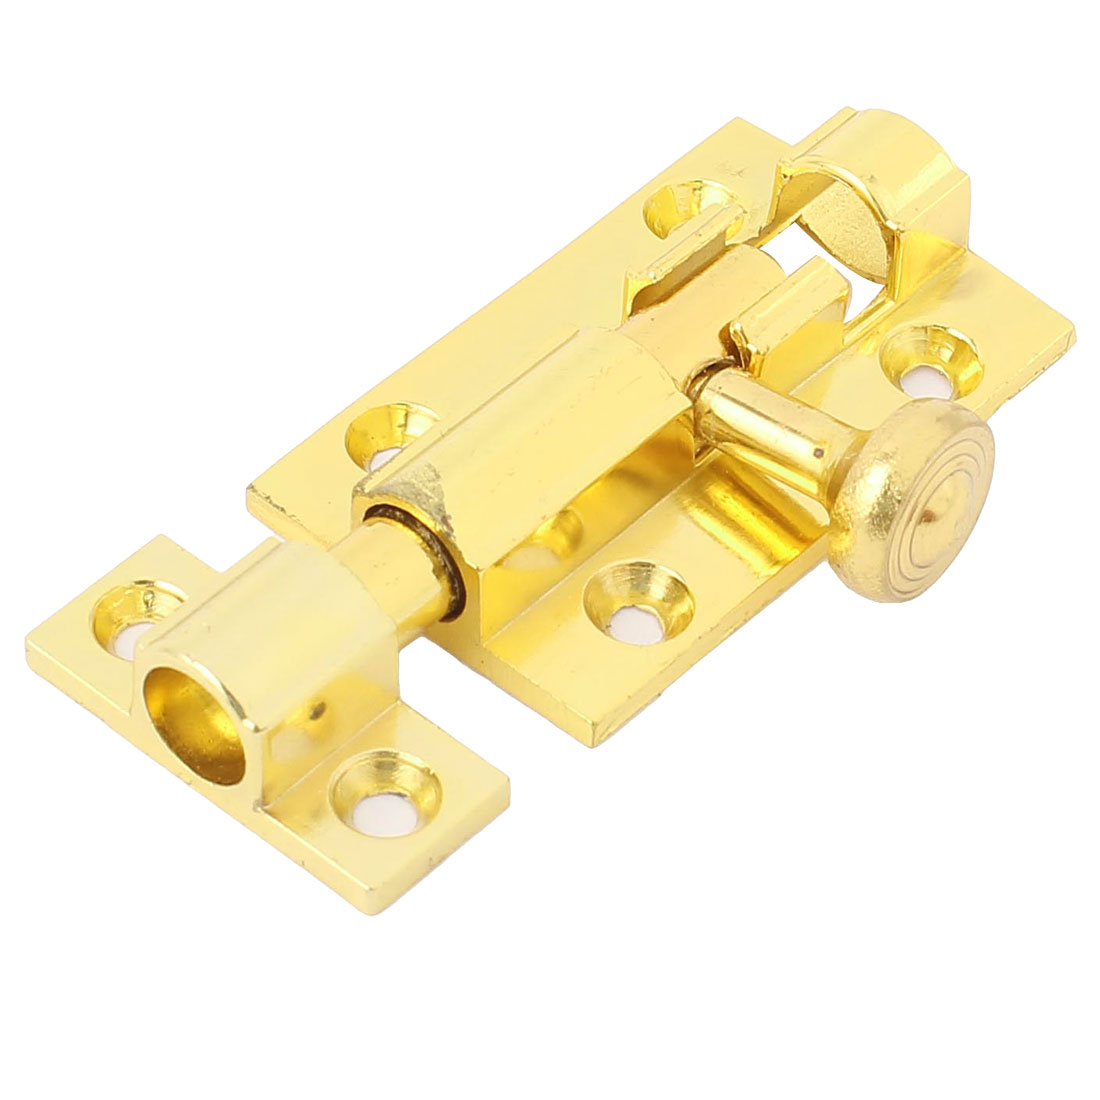 "Gold Tone Copper Door Sliding Lock Security Latch Barrel Bolt 2.5"" Length"